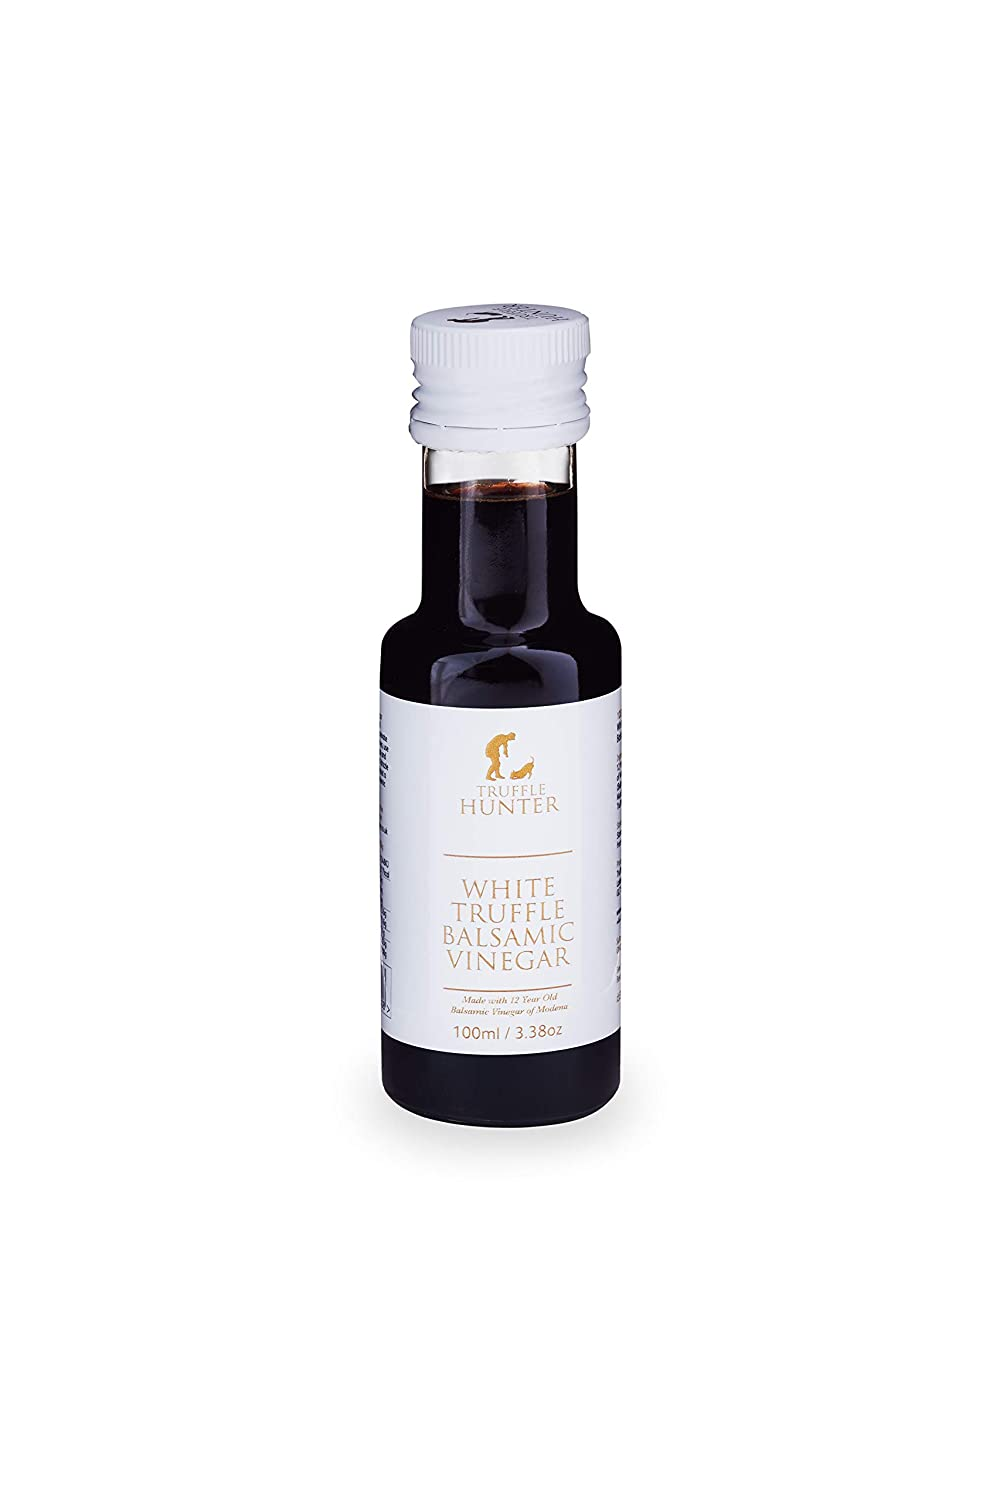 White Truffle 12 Year Old Balsamic Vinegar of Modena (100ml Gift Bottle) by  TruffleHunter - Vegetarian a4dcc216fb